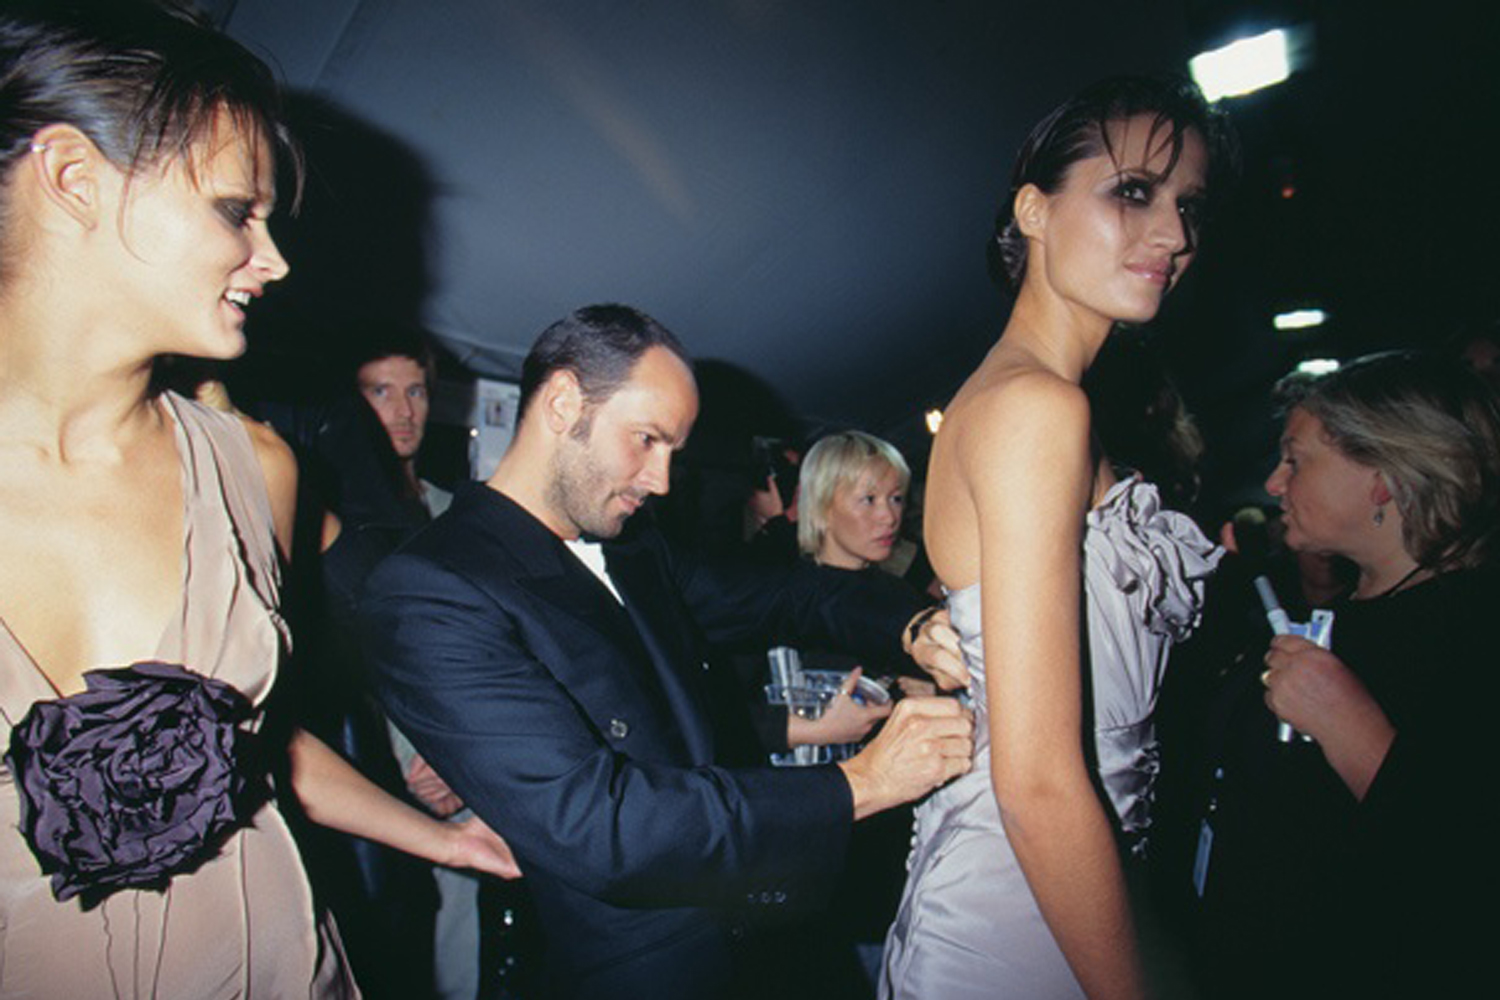 Tom ford, Tom Ford Gucci, Gucci backstage, Backstage photography